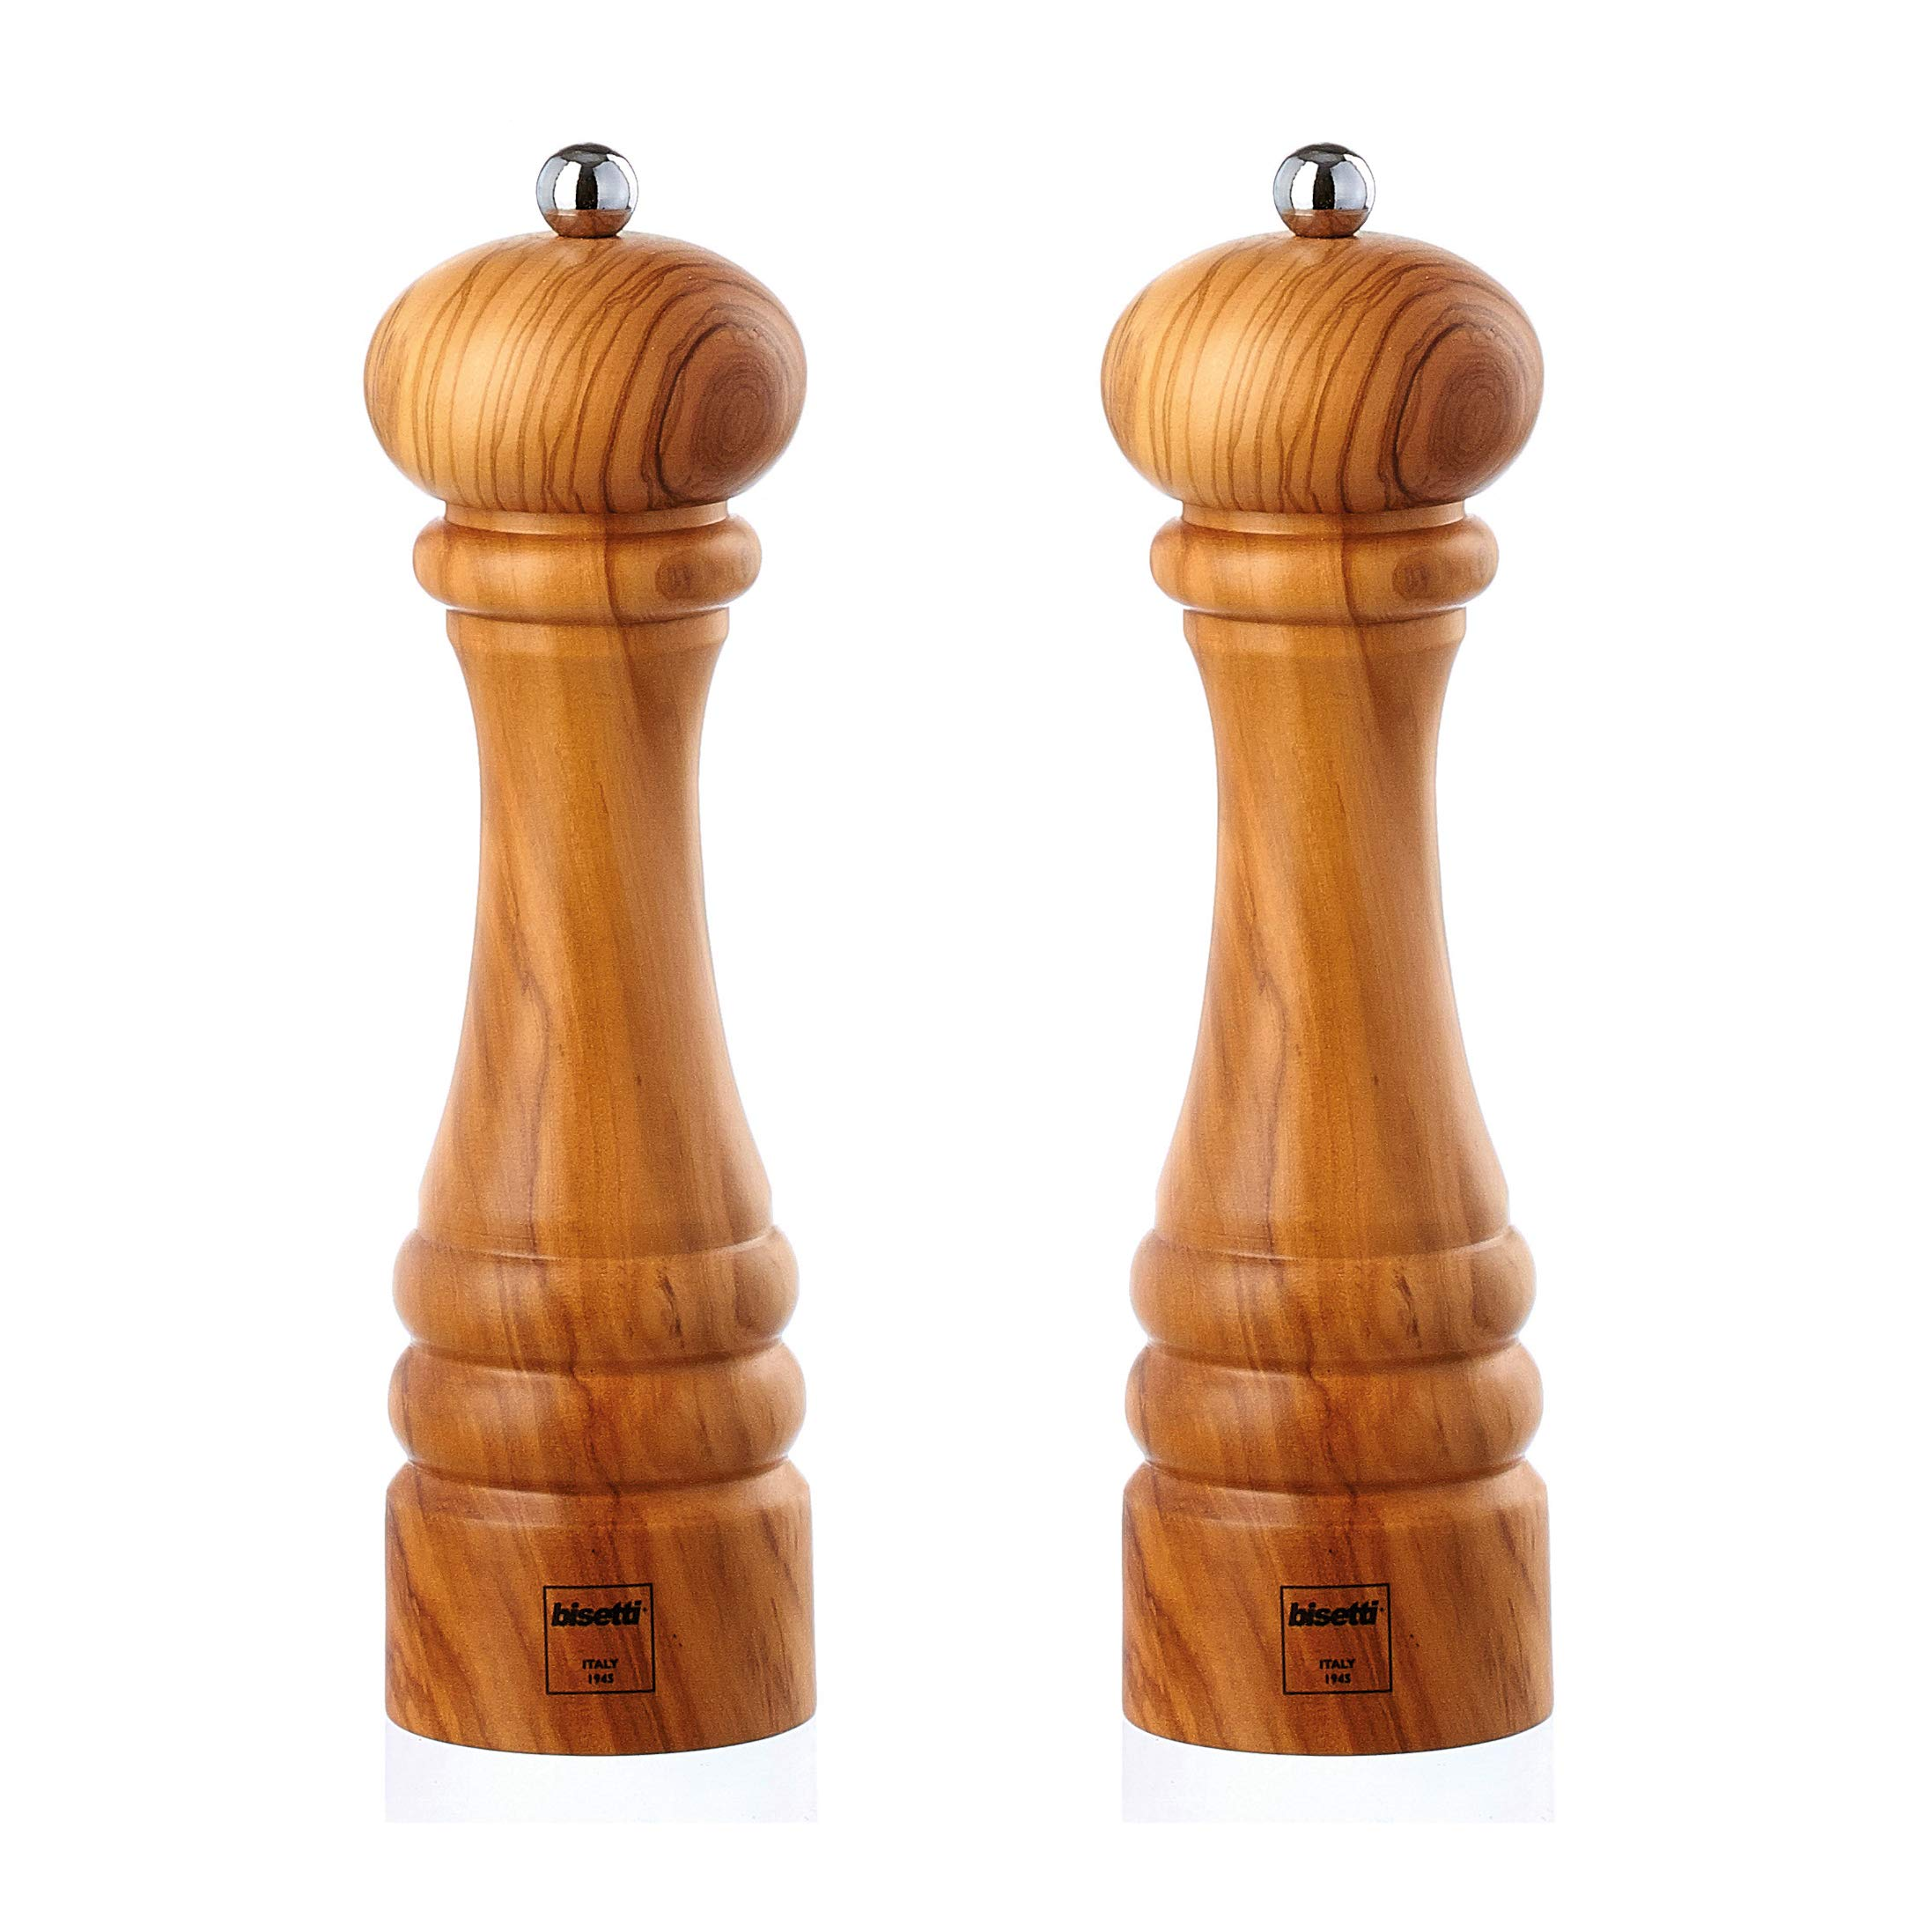 Bisetti Imperia Olive Wood Salt & Pepper Mill Set With Adjiustable Grinder, Made in Italy (8.9 Inch) by bisetti